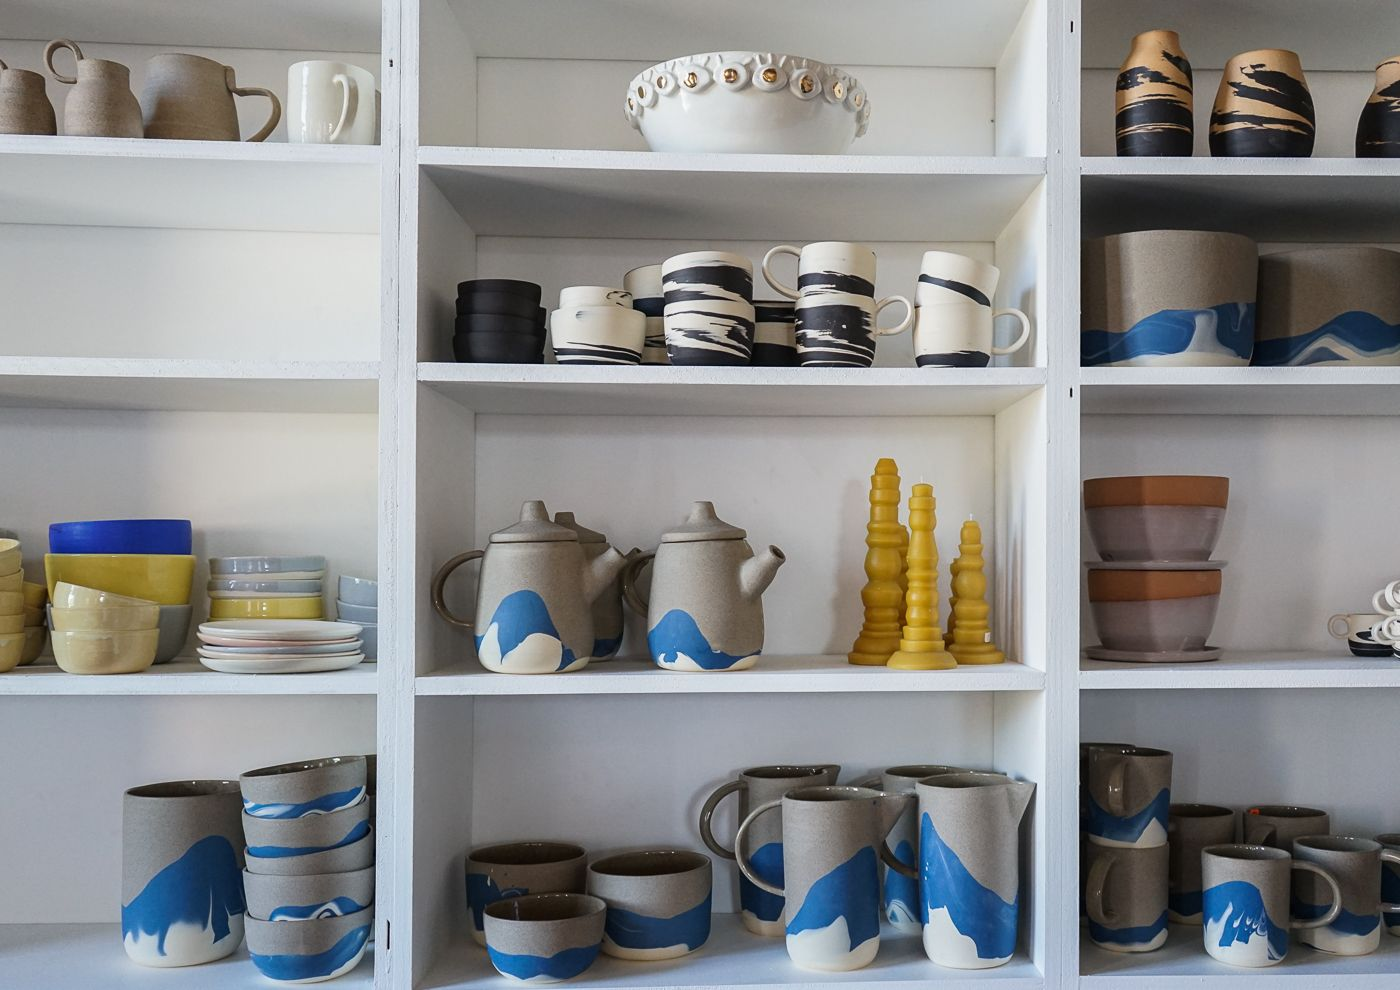 Helen Levi, handmade ceramics in Brooklyn. Read more http://www.theshopkeepers.com/helen-levi/